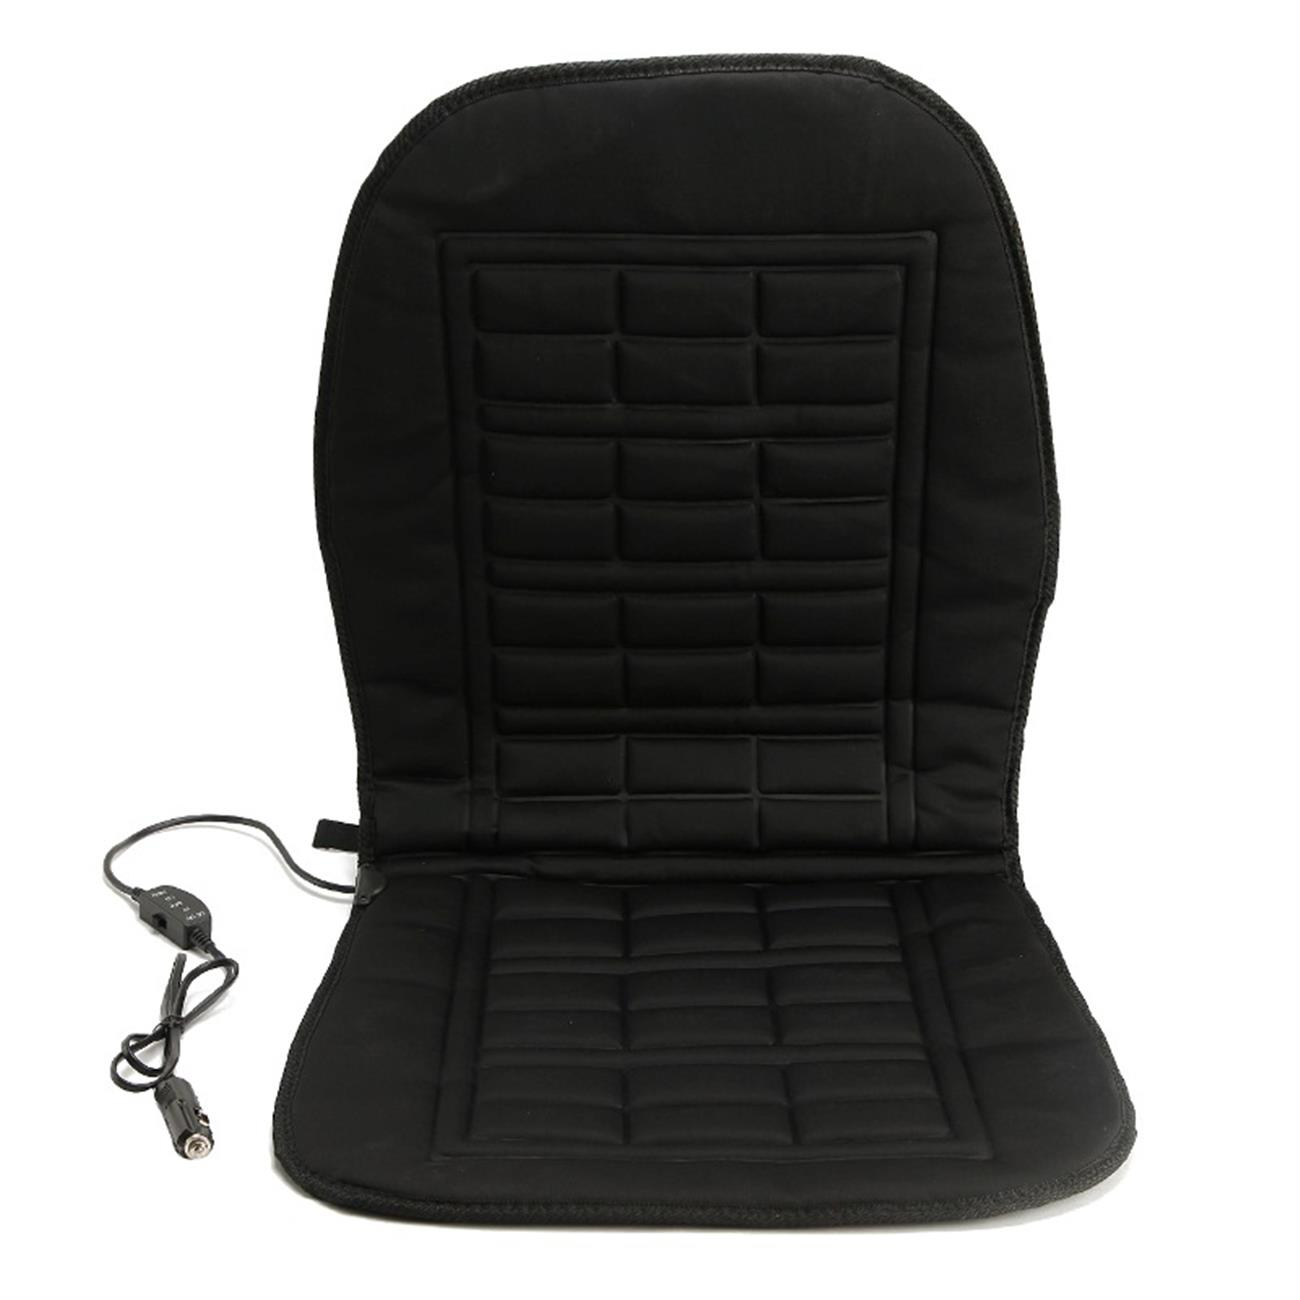 Beamnova Car Heated Seat Cover Cushion Hot Warmer 12V ...